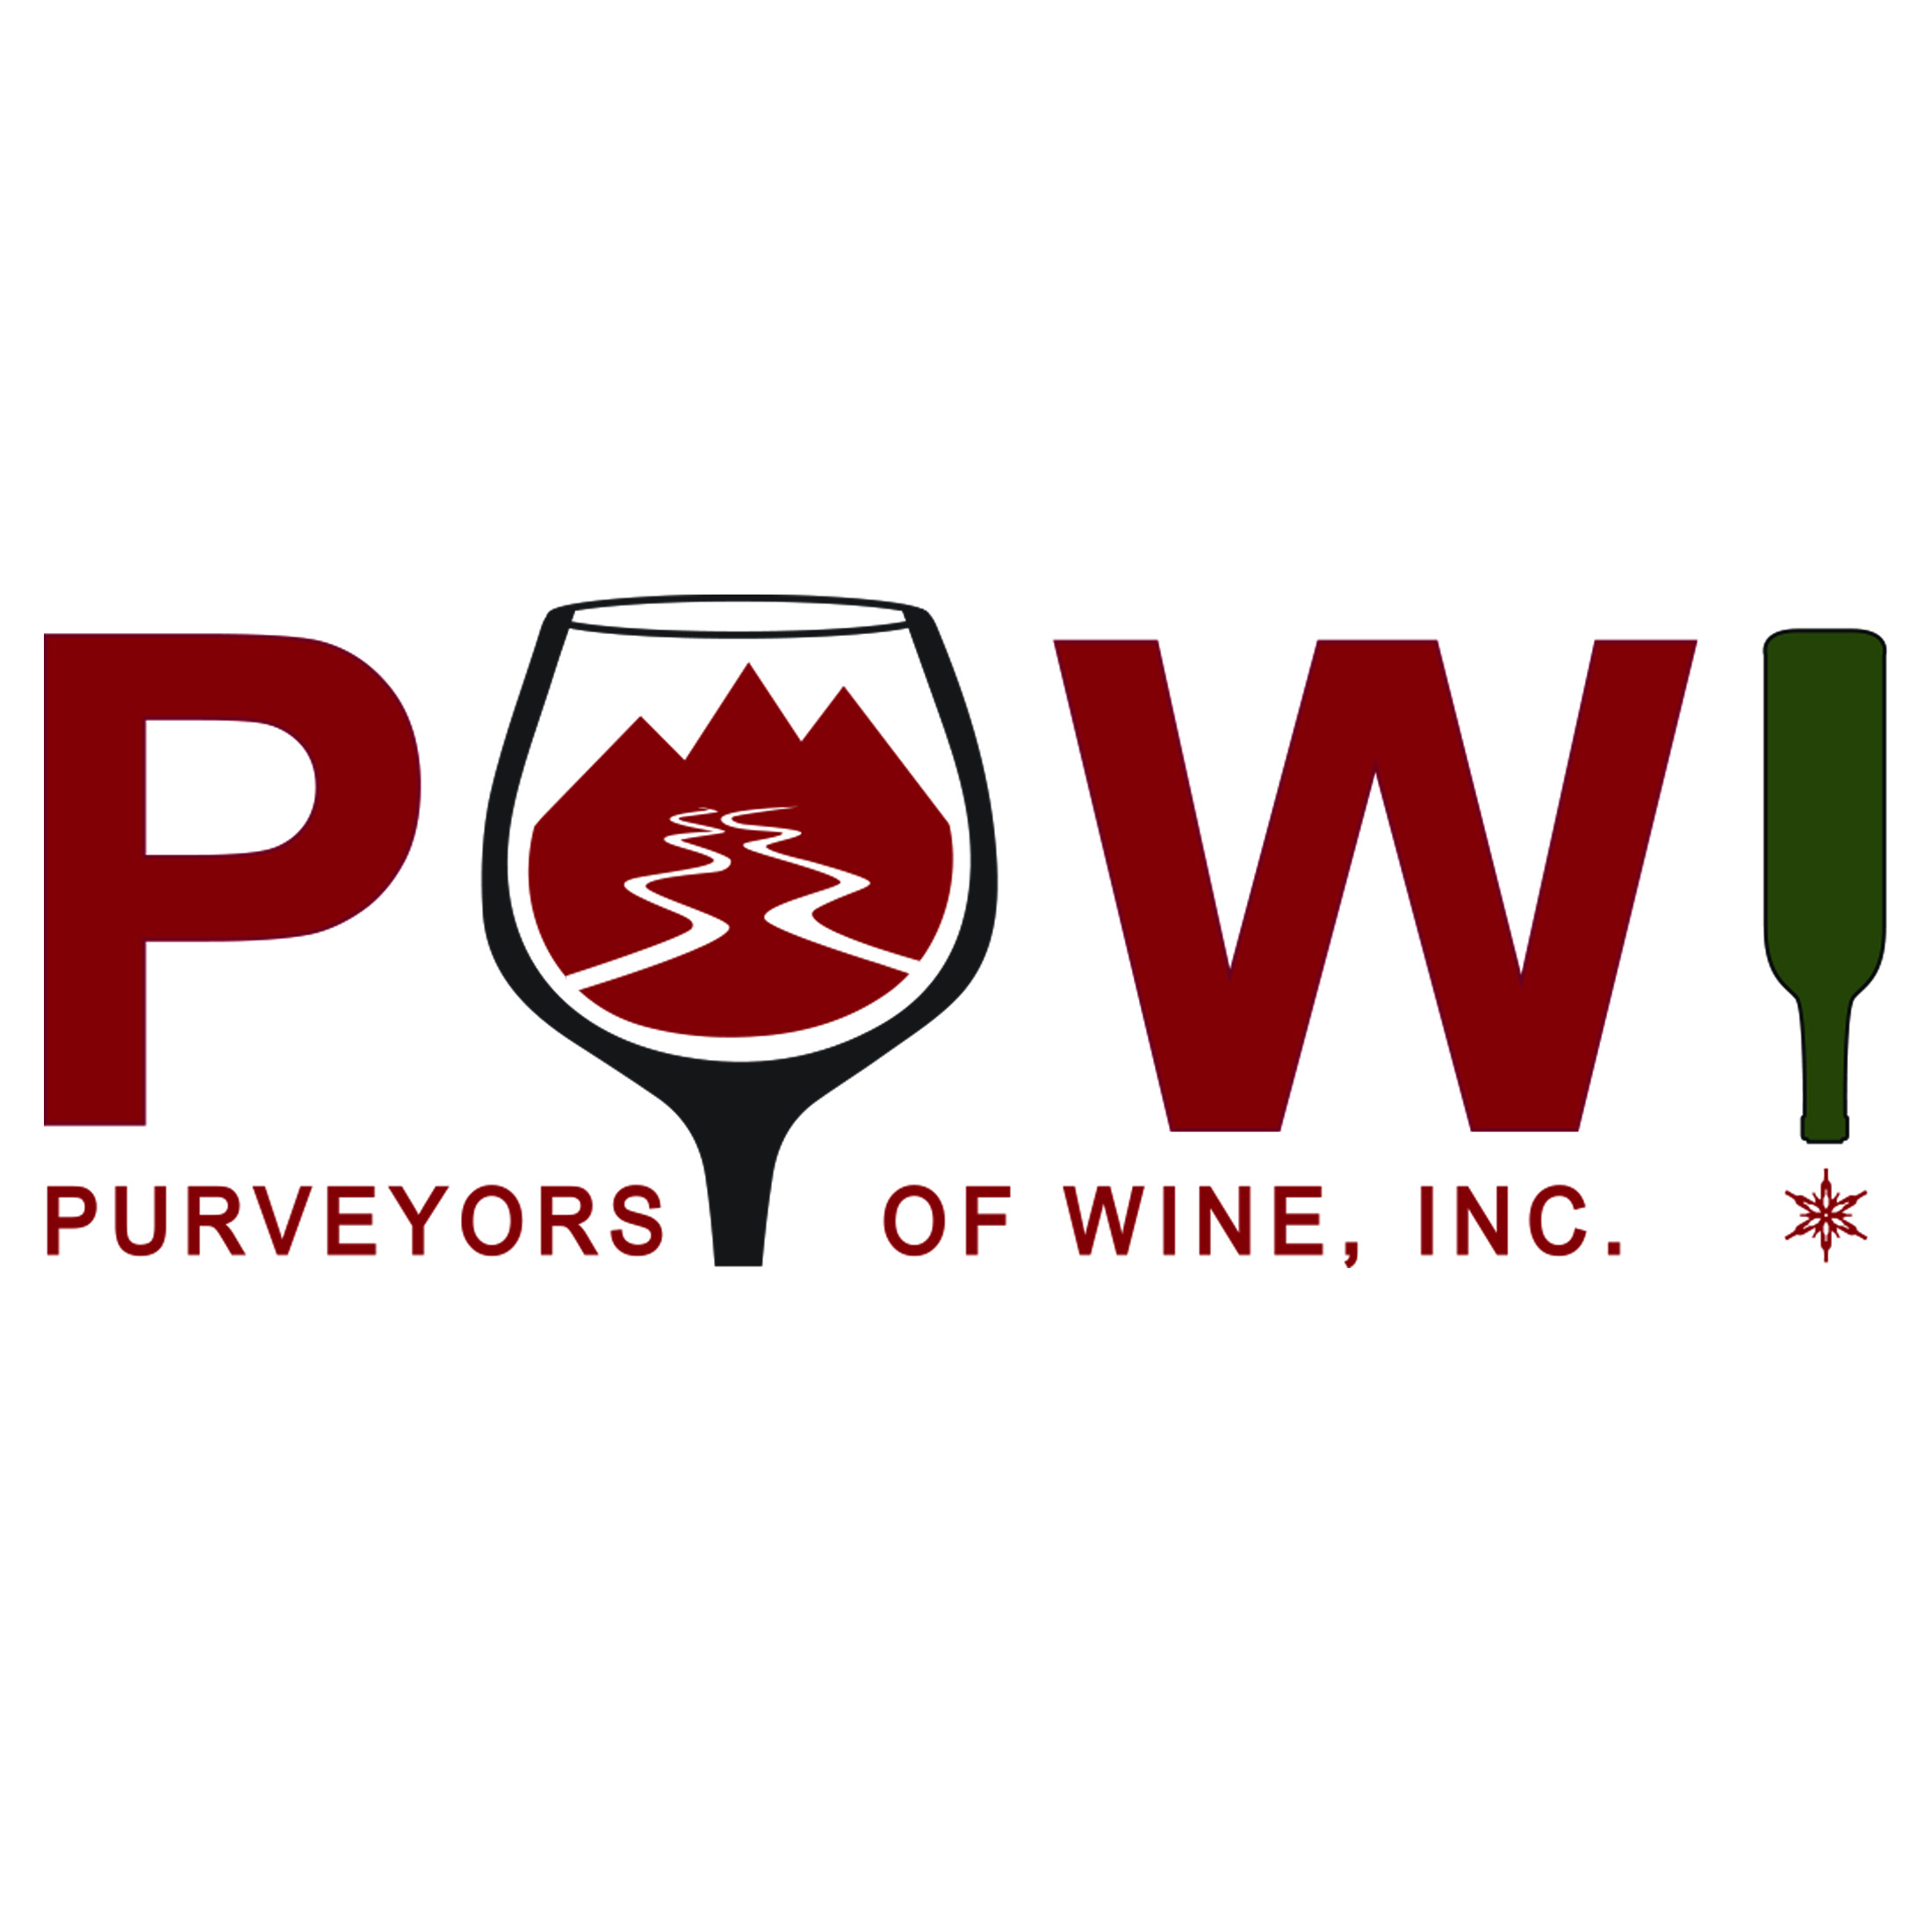 Purveyors of Wine